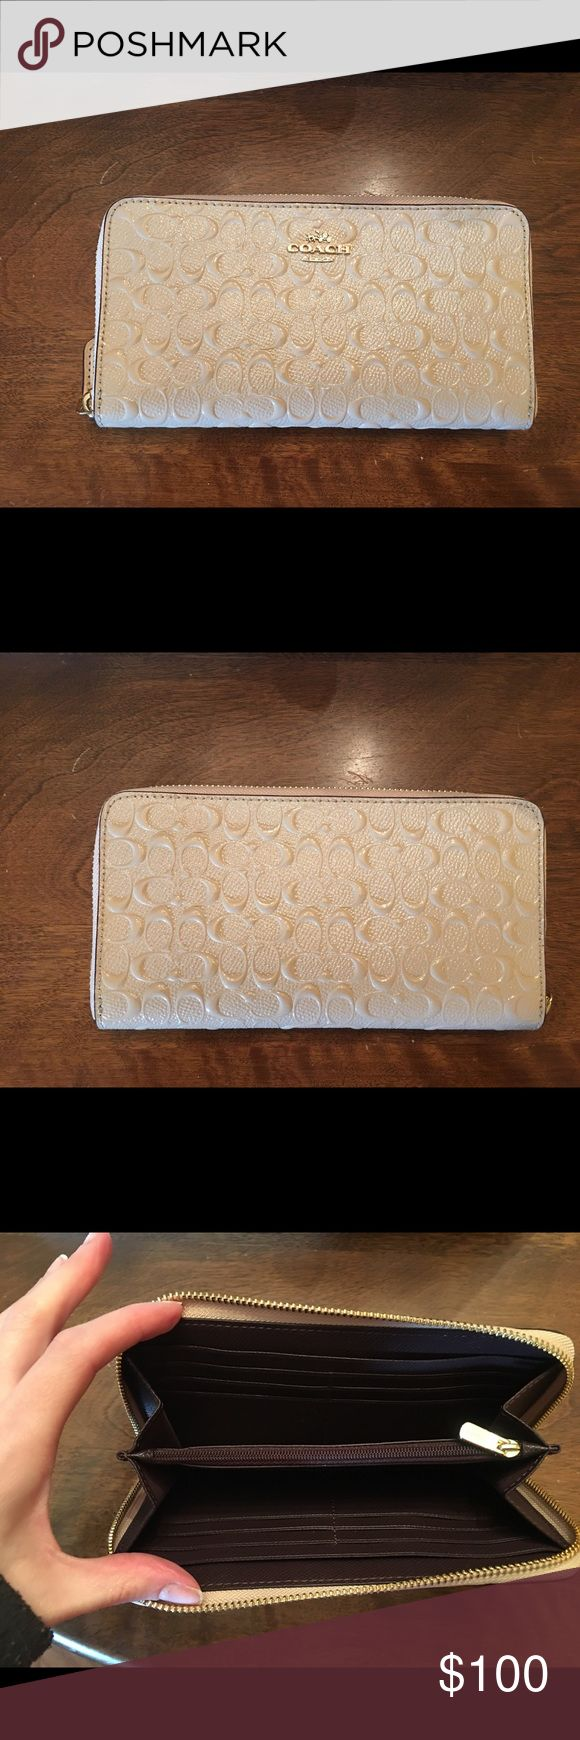 Authentic Coach Wallet Authentic Coach wallet cream color matches the Coach bag also listed. Only used 2 times practically brand new. Coach Bags Wallets